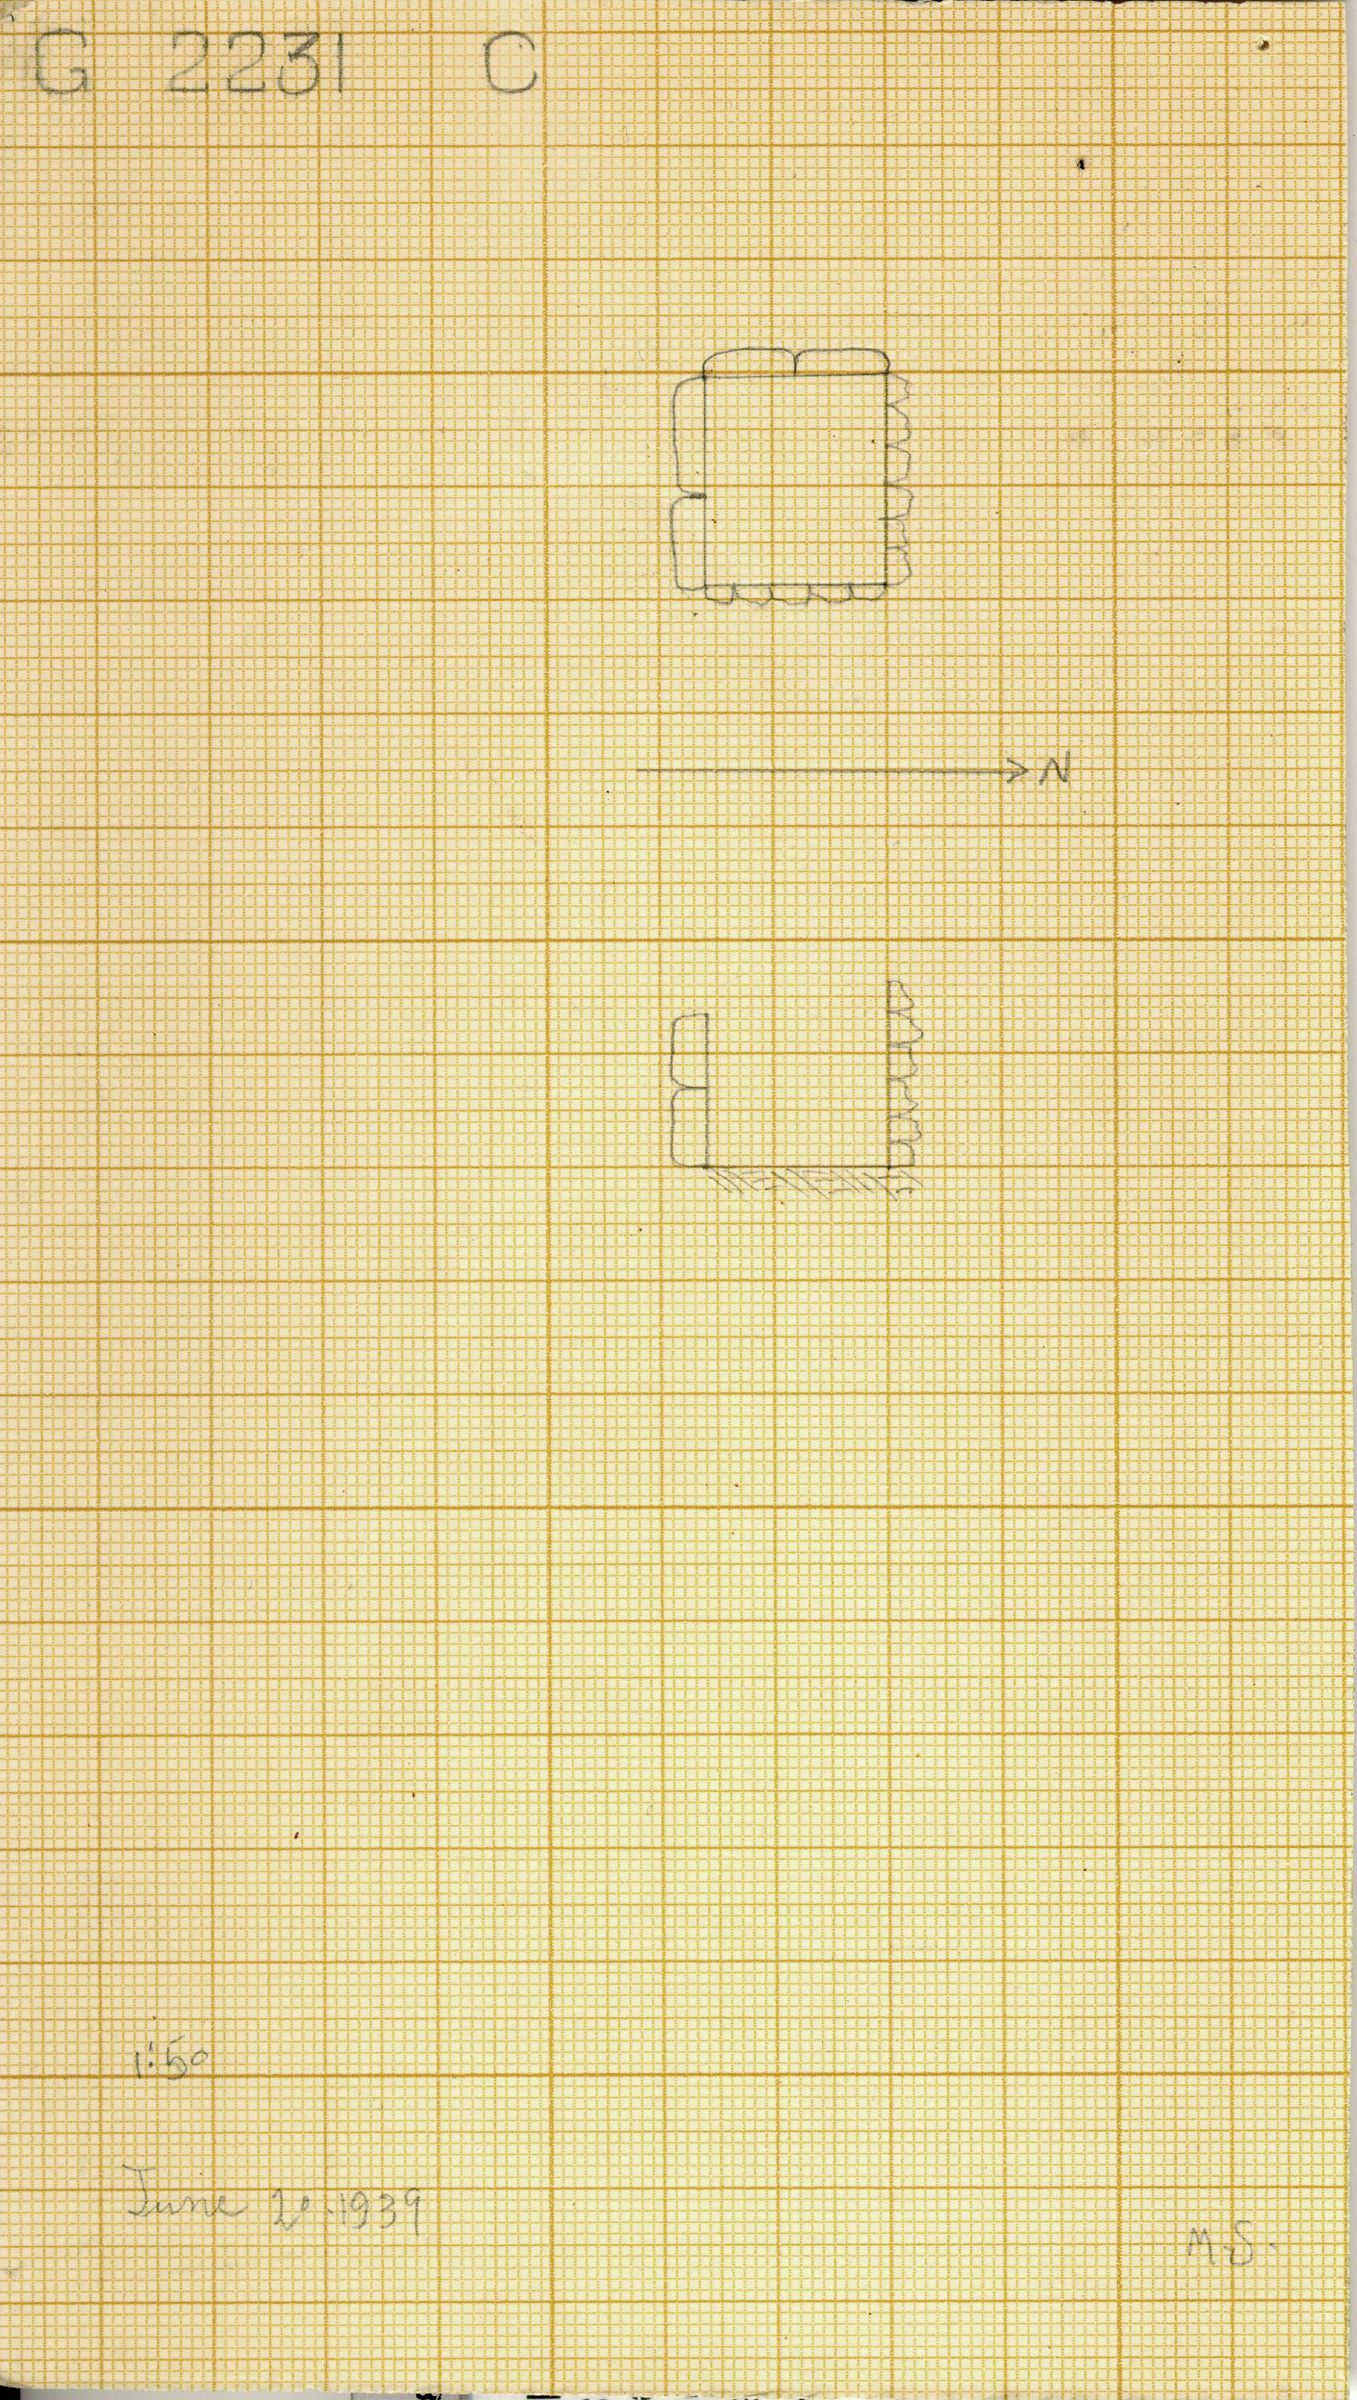 Maps and plans: G 2230+2231: G 2231, Shaft C